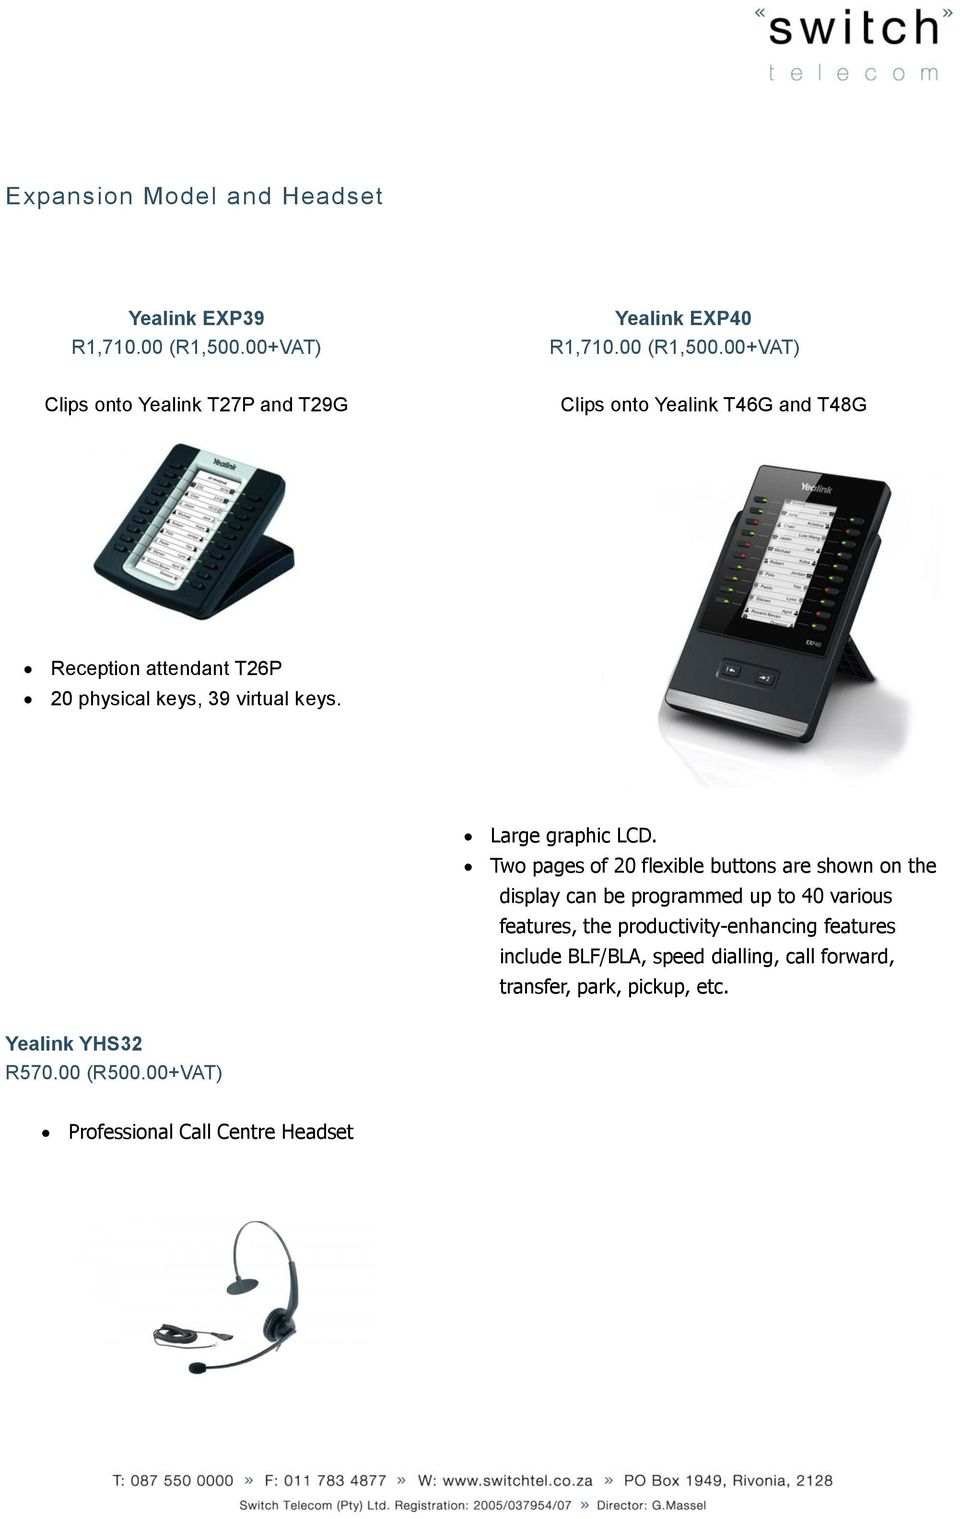 00+VAT) Clips onto Yealink T27P and T29G Clips onto Yealink T46G and T48G Reception attendant T26P 20 physical keys, 39 virtual keys.